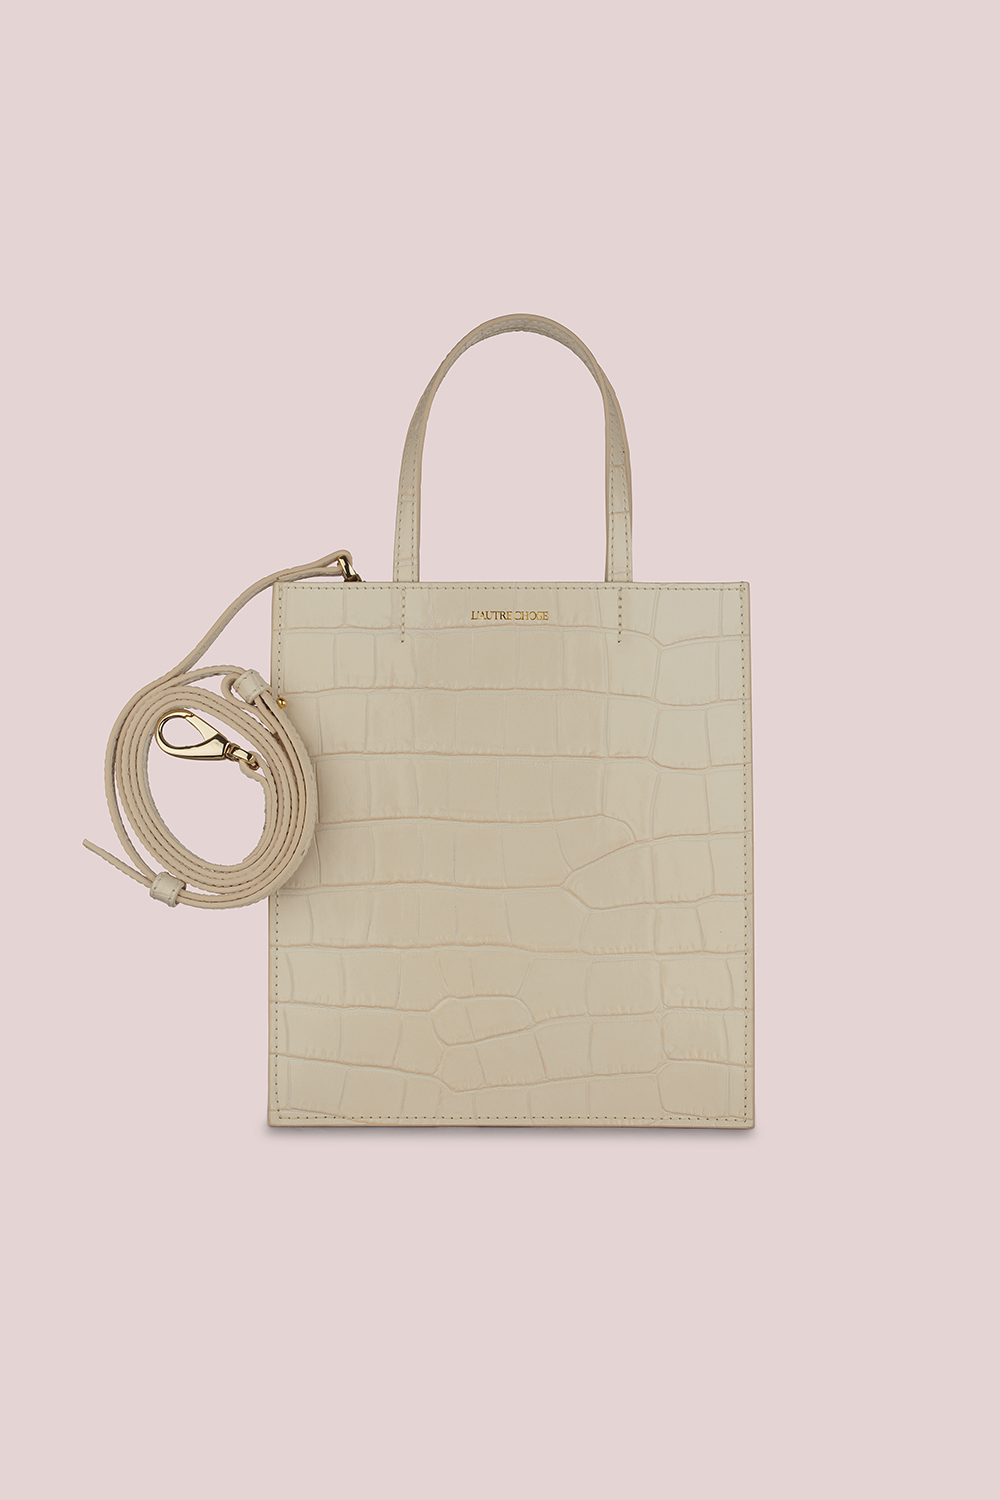 SHOPPING BAG IN MILKY-WHITE CROCODILE-PRINT LEATHER